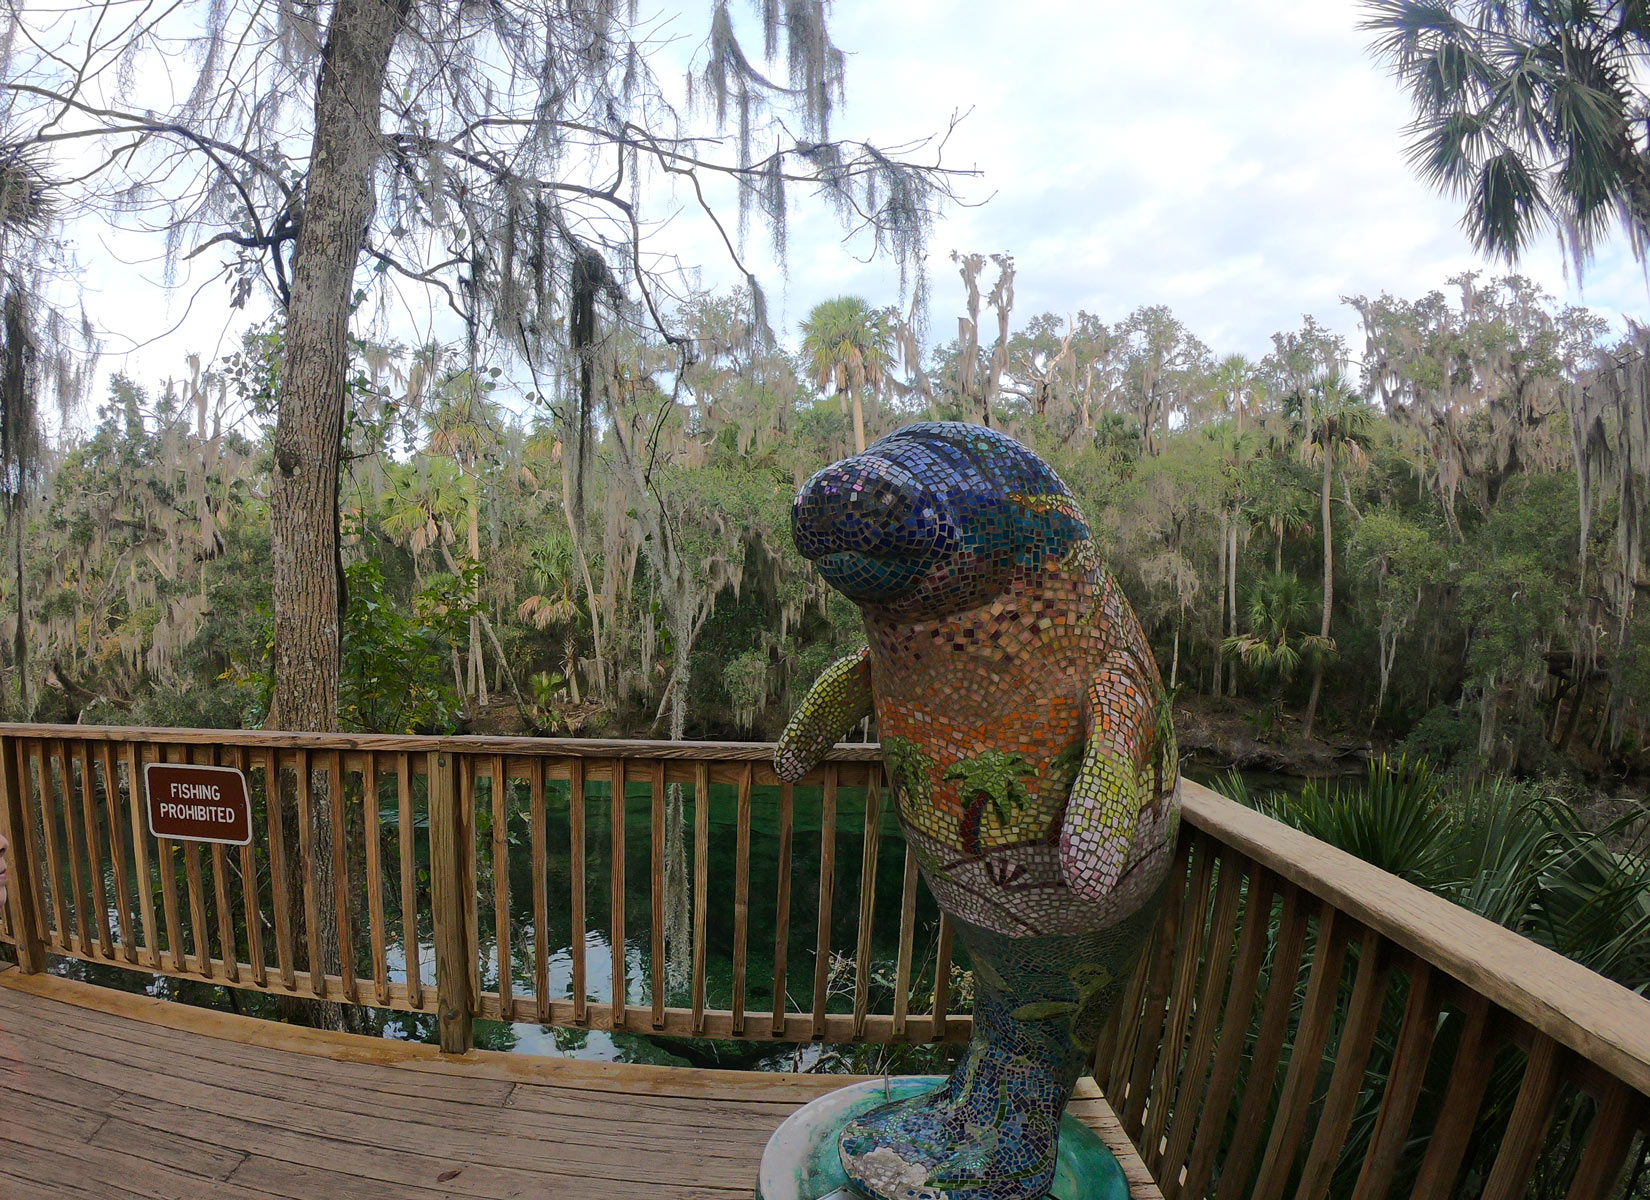 Multi-colored tiled mosaic manatee sculpture on a wooden observation deck at Blue Spring State Park, Florida